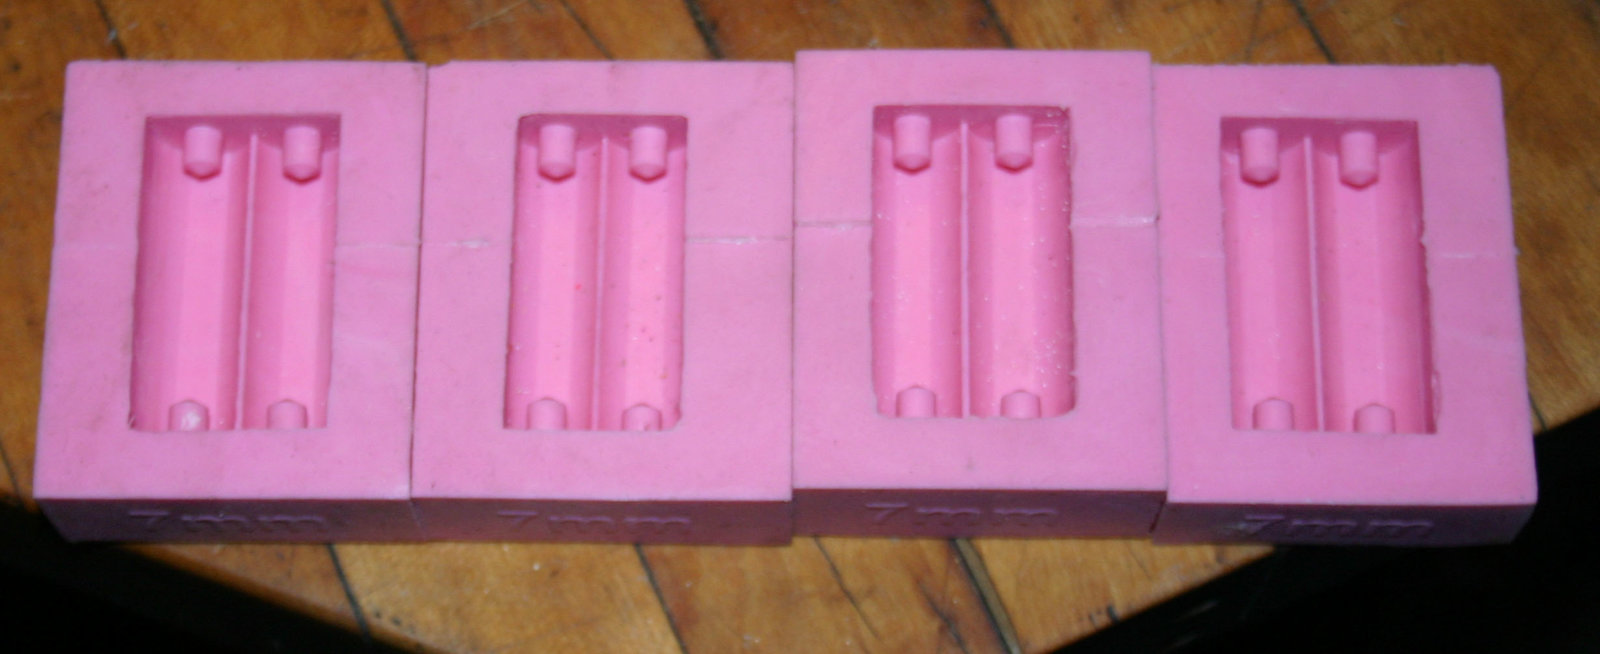 resin saver 001 copy.jpg